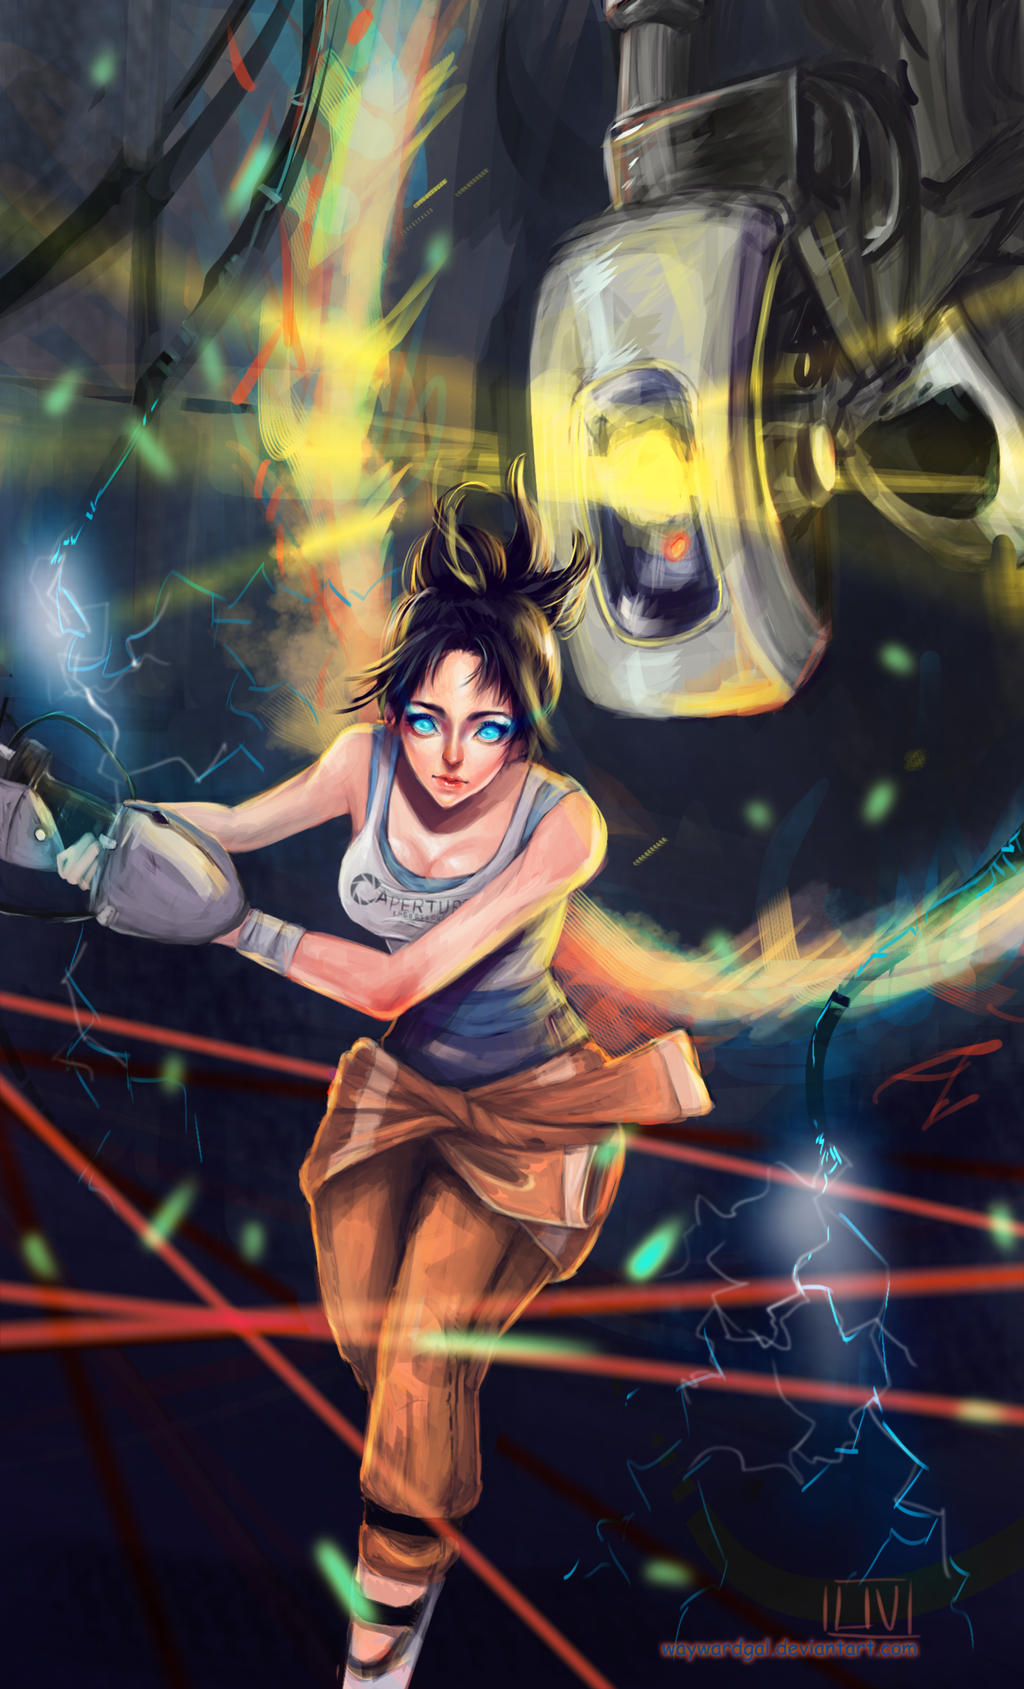 glados and chell relationship problems